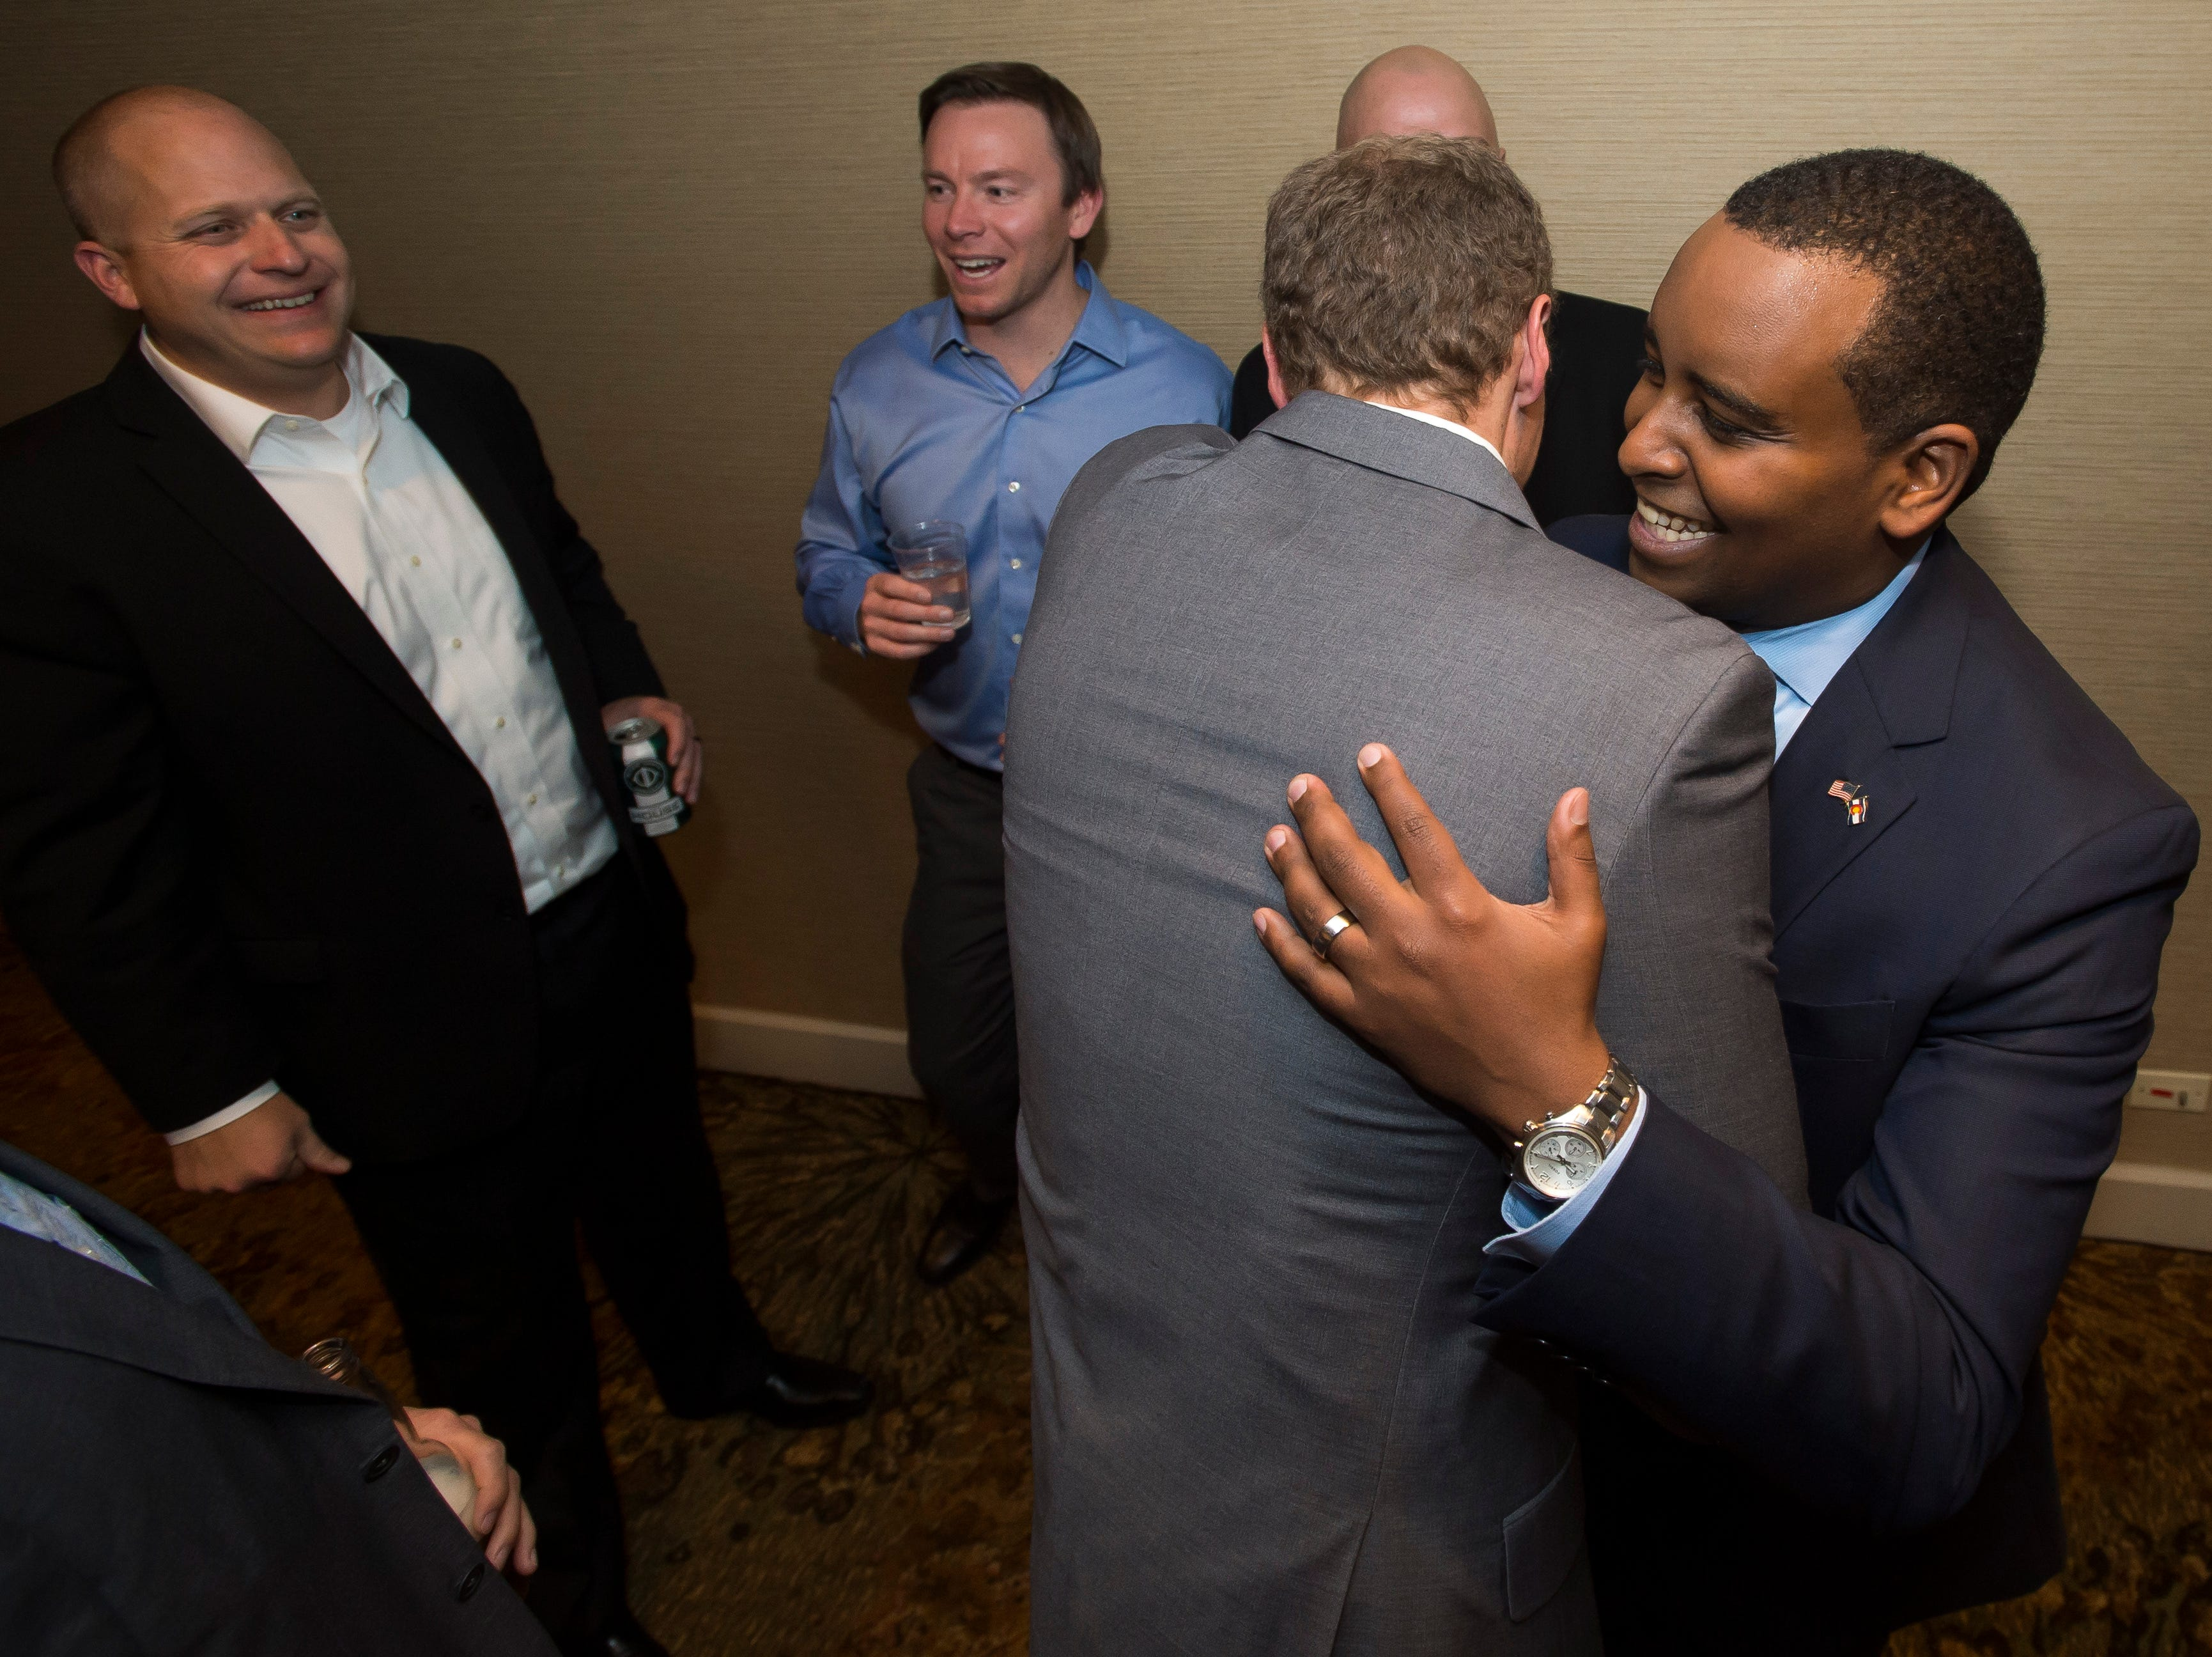 Colorado 2nd congressional district candidate Joe Neguse is congratulated by friends during his election watch party on Tuesday, Nov. 6, 2018, at the Westin Denver Downtown hotel in Denver, Colo.